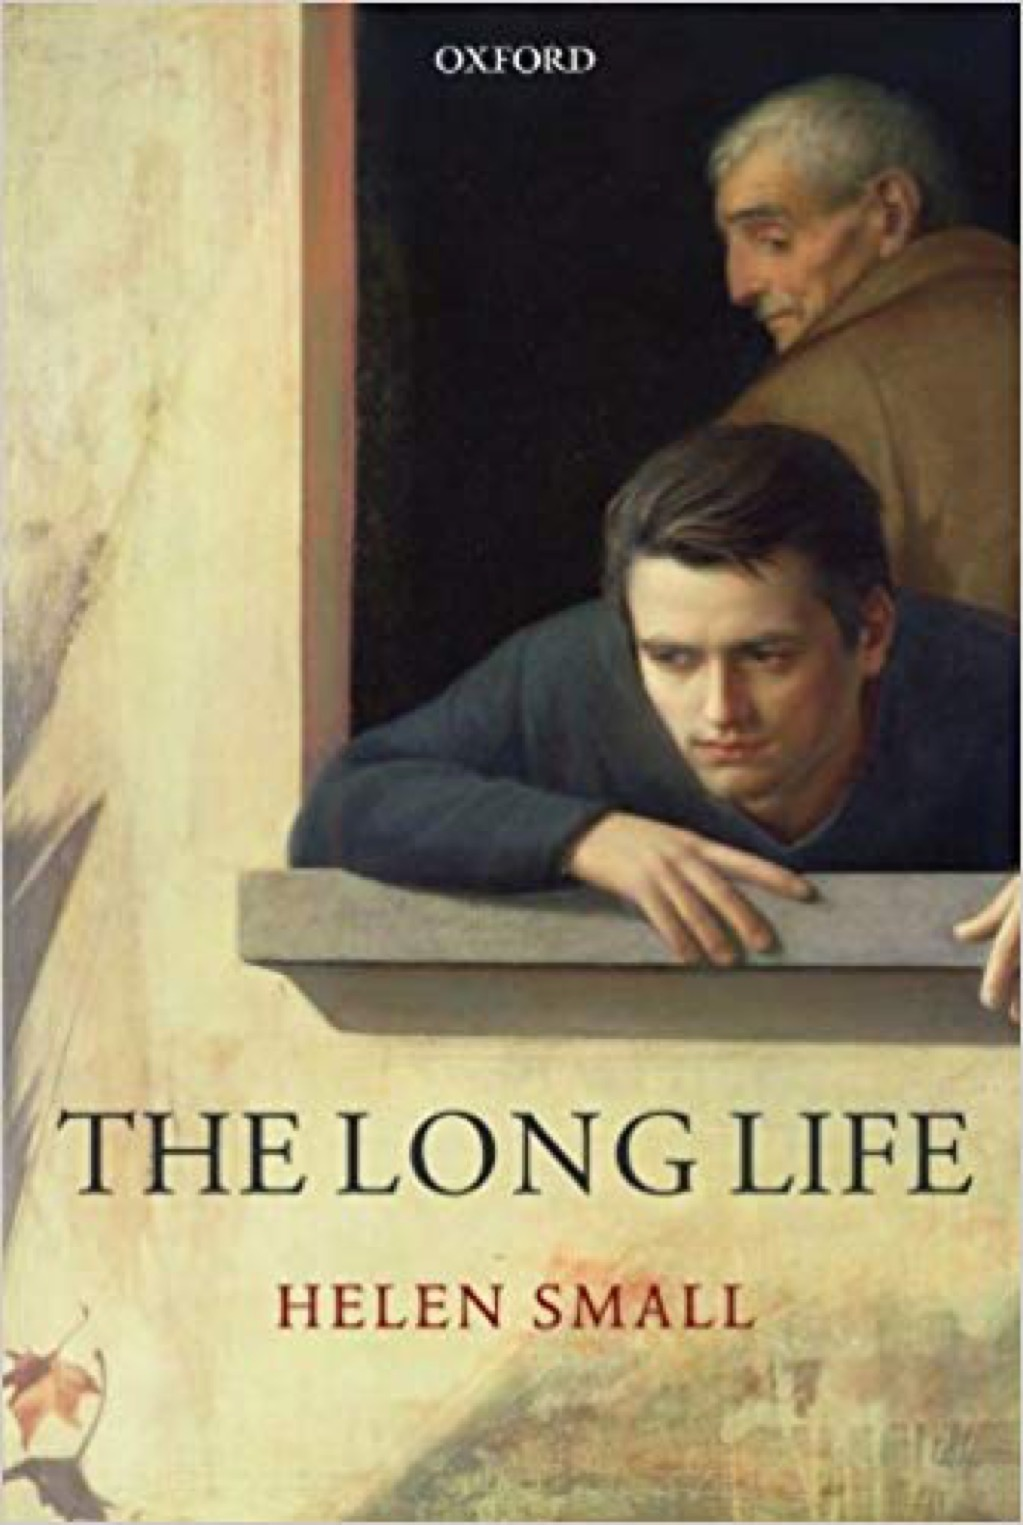 The Long Life by Helen Small